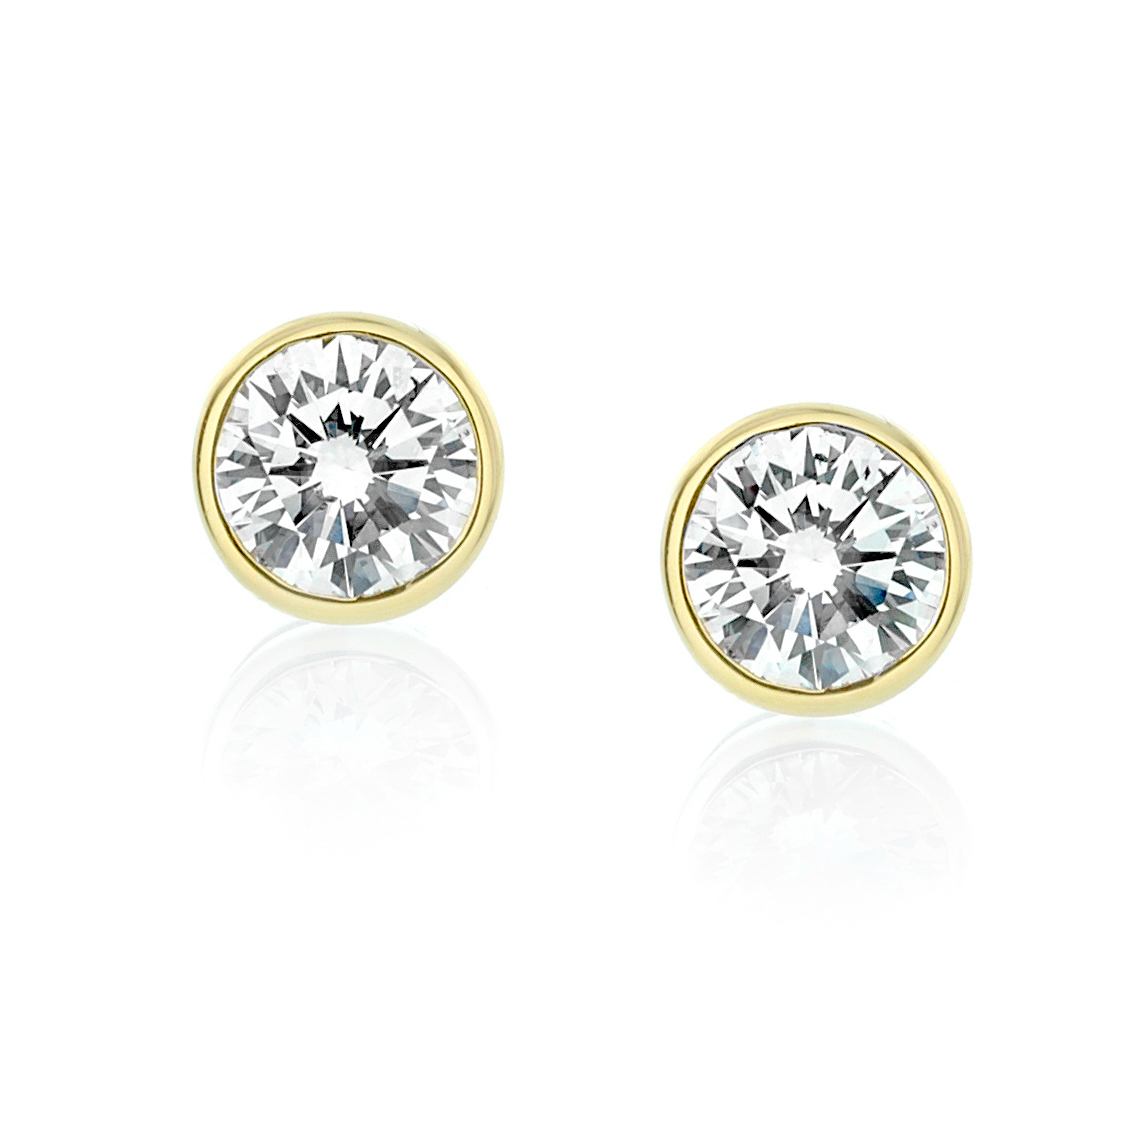 marshall product brilliant company bezel carat classic earring in diamond pierce cut stud earrings round set